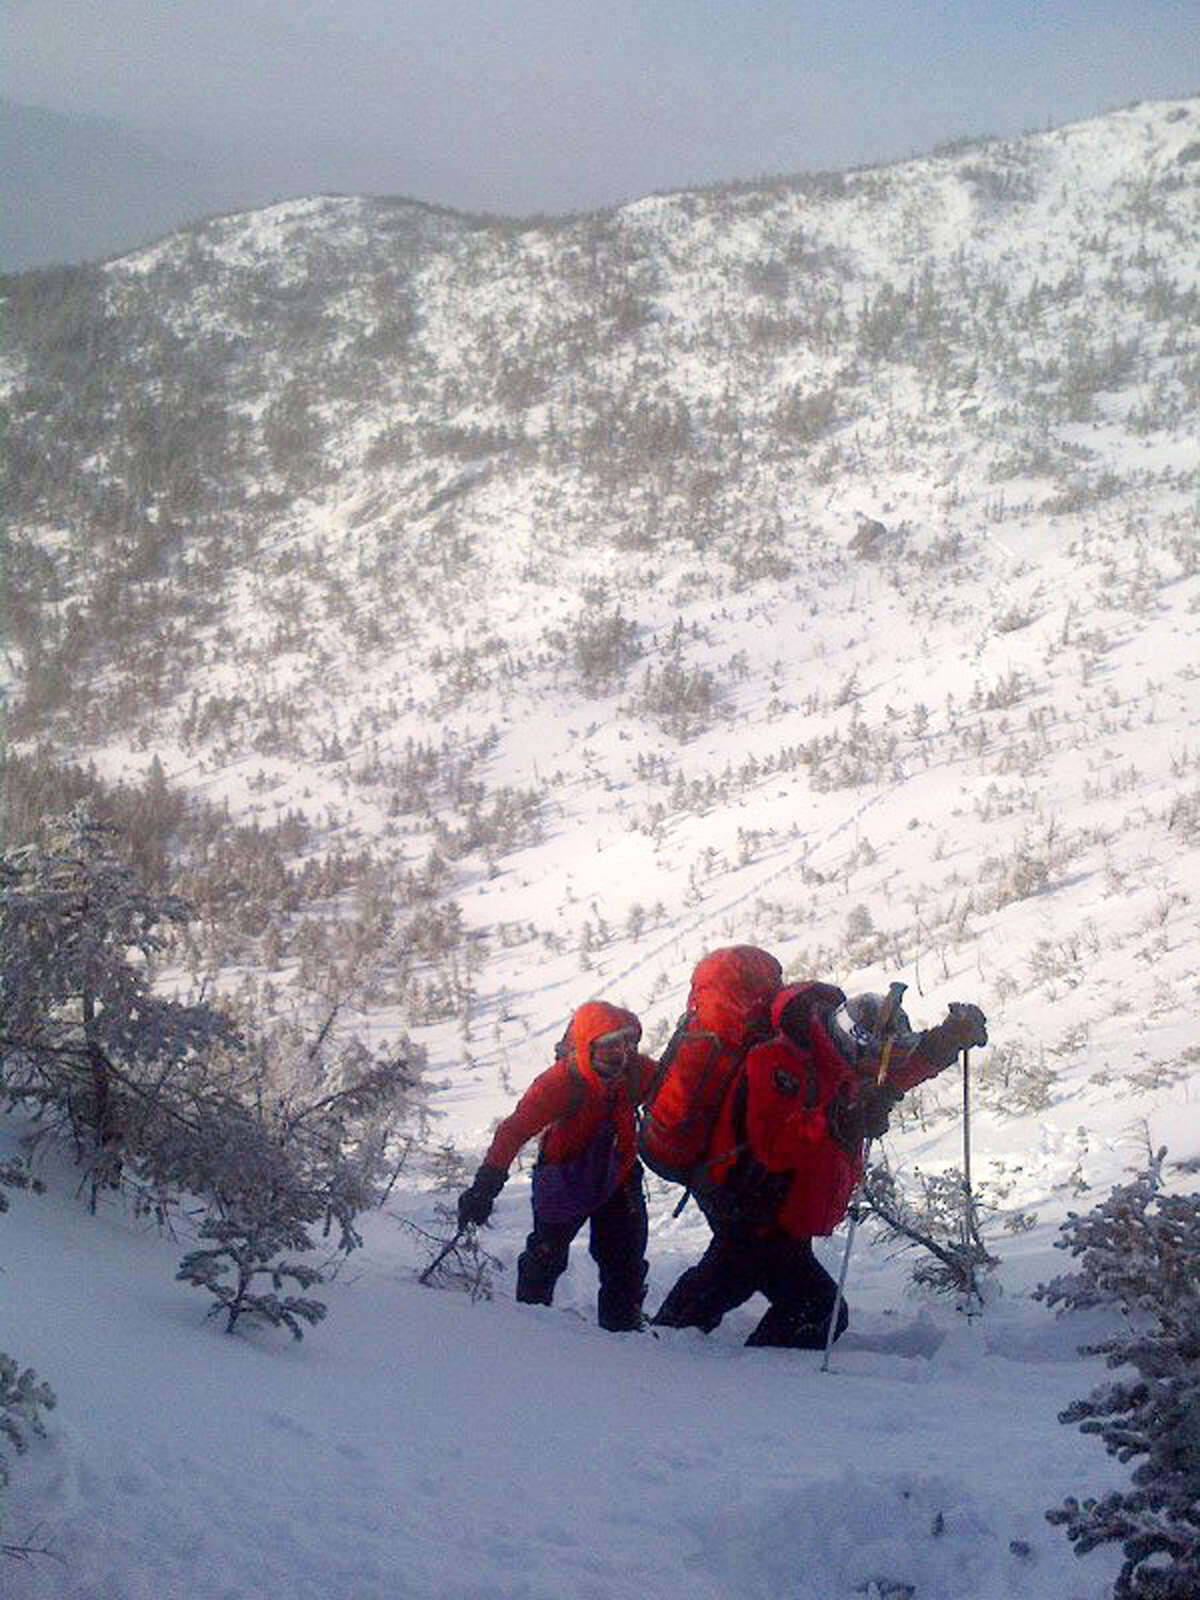 New York State Department of Environmental Conservation Forest Rangers search for a mother and her two sons on Mt. Marcy last weekend in Essex County, N.Y. (New York State DEC)